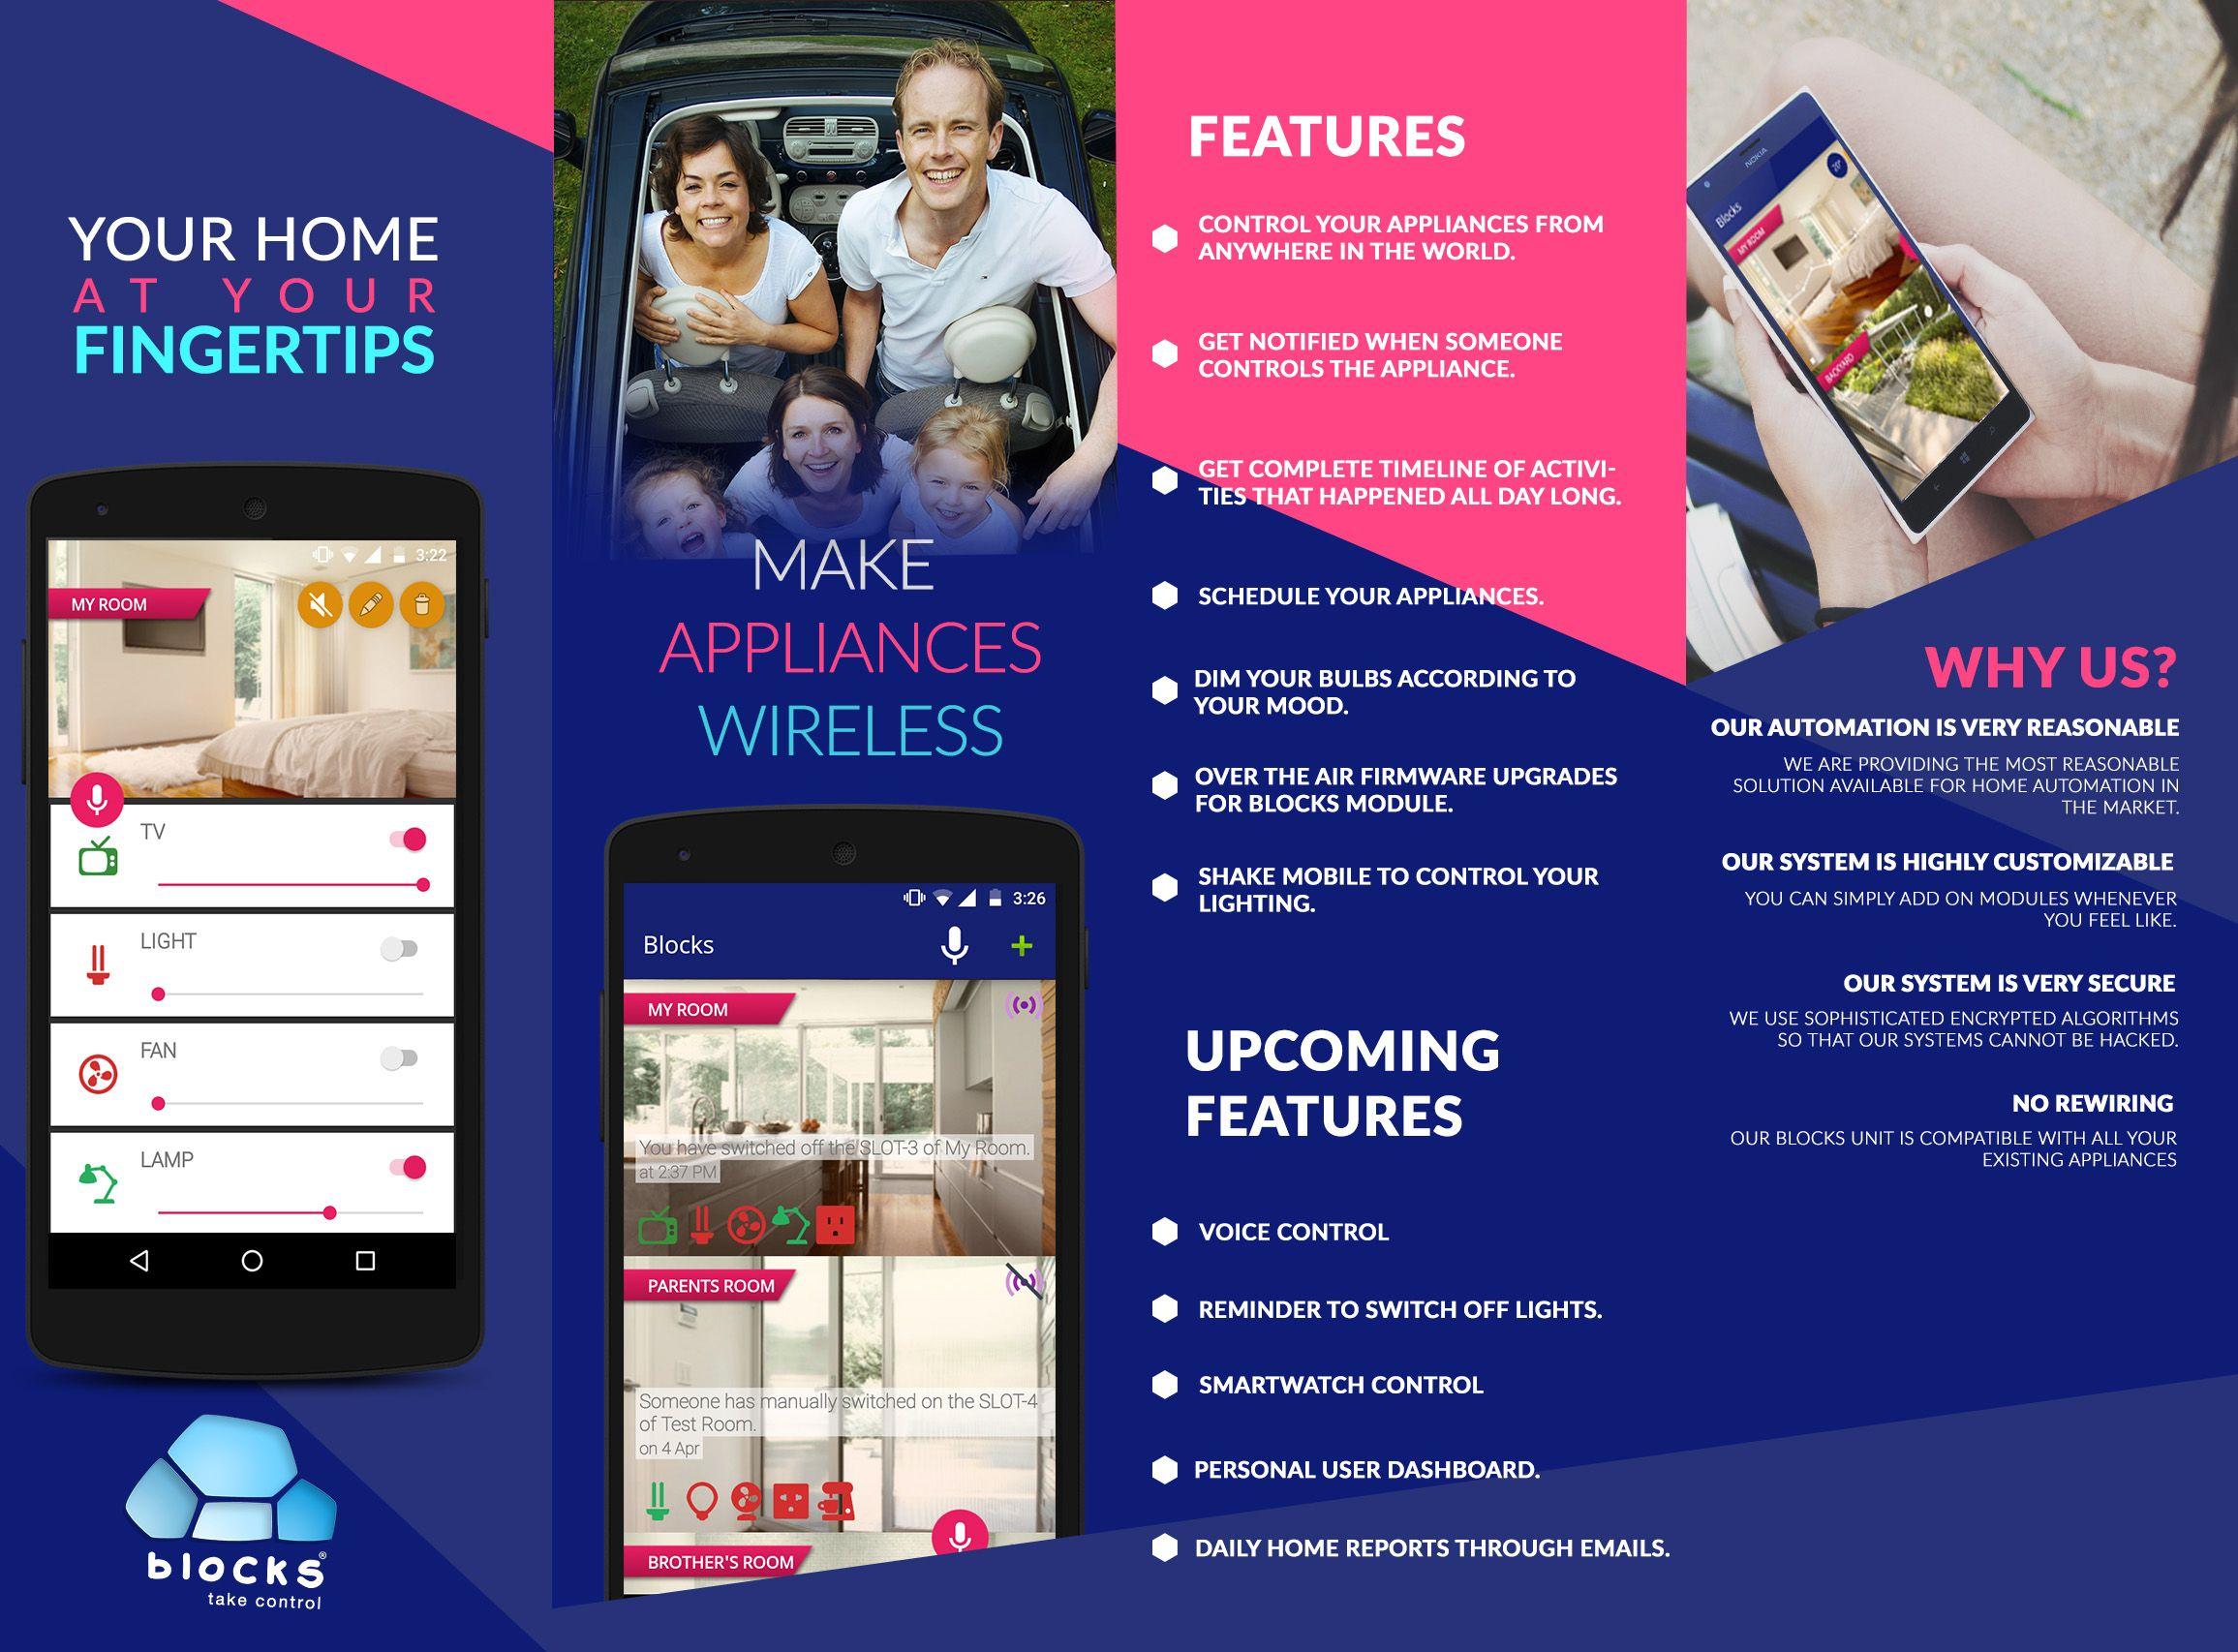 Brochure Cloudblocks Home Automation India In 2019 Home